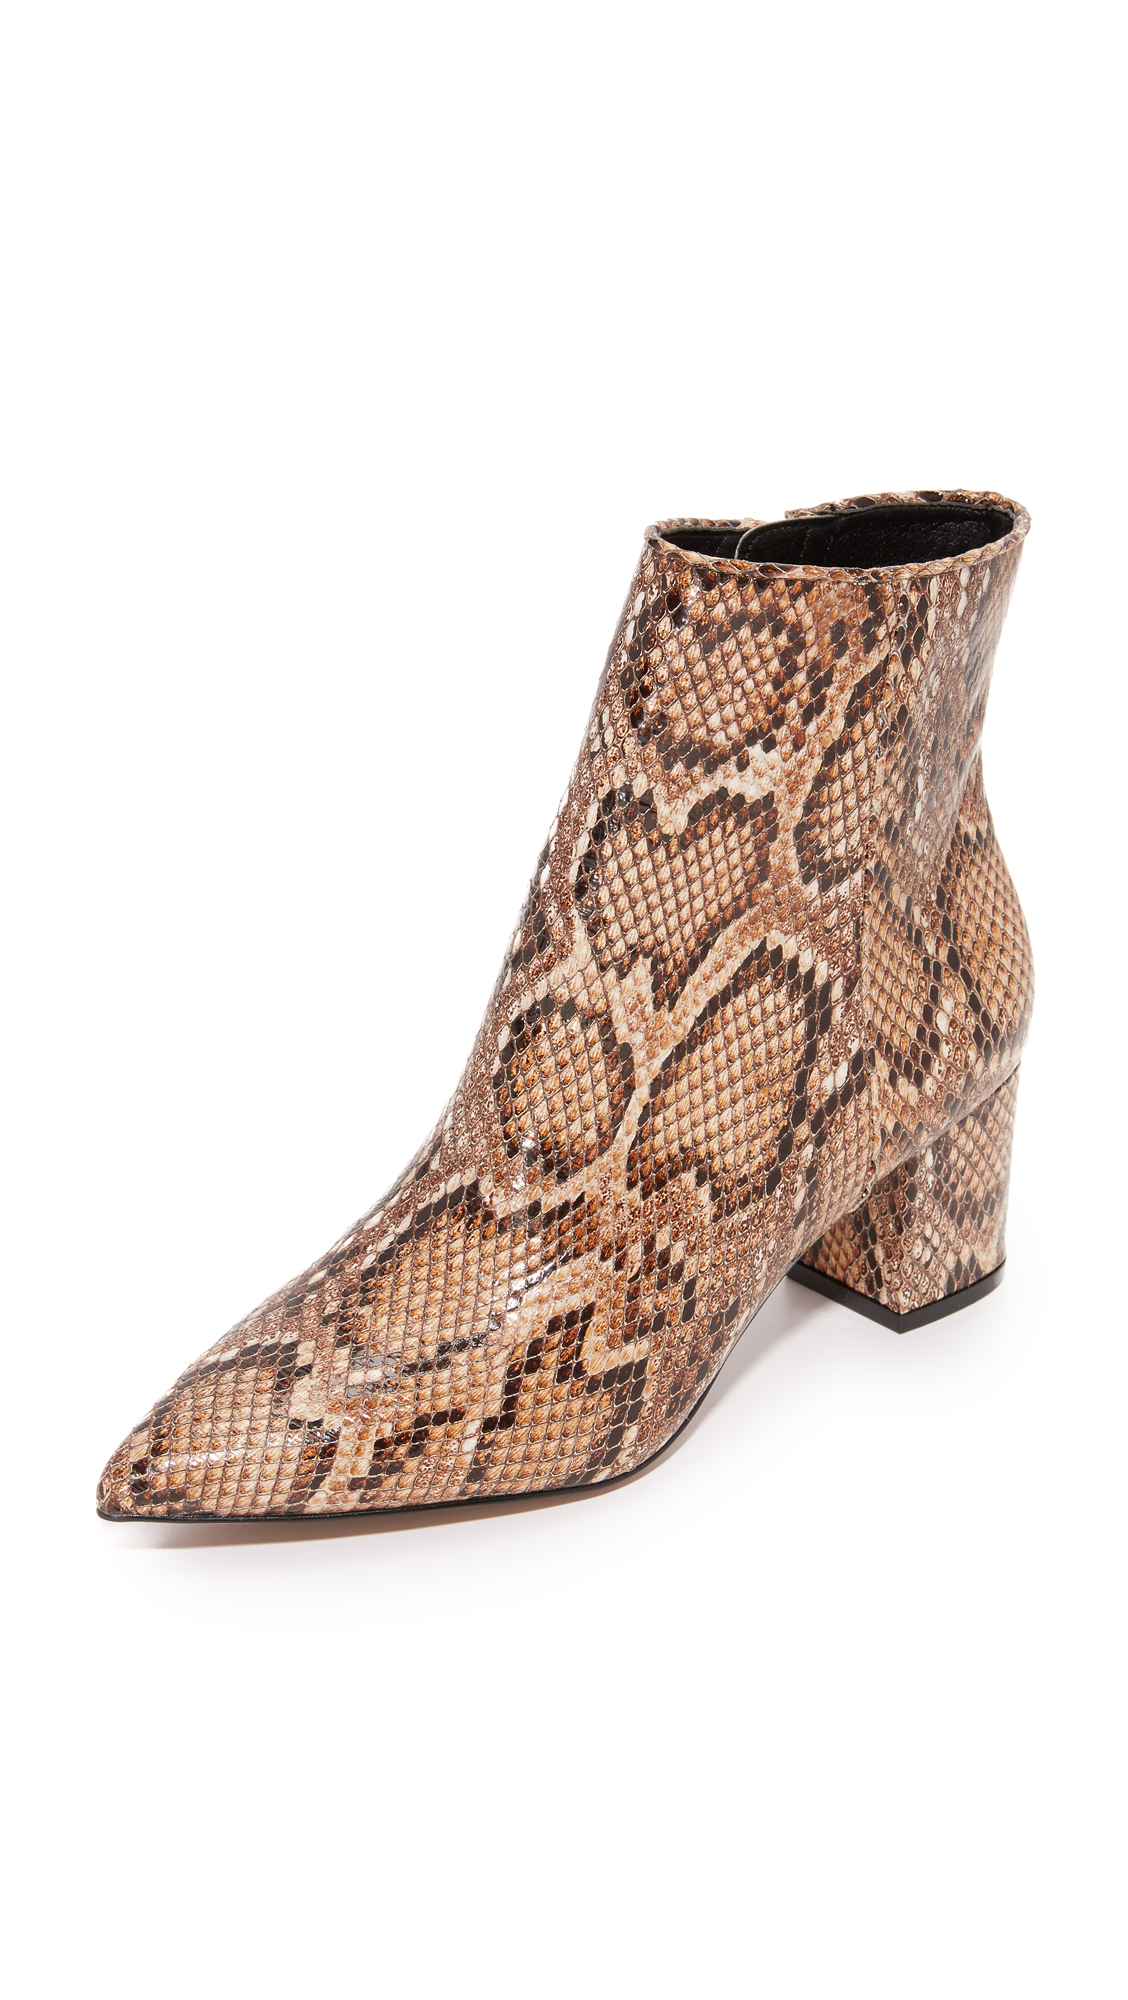 Snake embossed leather adds sophistication to these pointed toe Steven booties. Exposed side zip. Covered heel. Synthetic sole. Leather: Pigskin. Imported, China. This item cannot be gift boxed. Measurements Heel: 2.25in / 55mm. Available sizes: 6.5,7,7.5,8,8.5,9,9.5,10